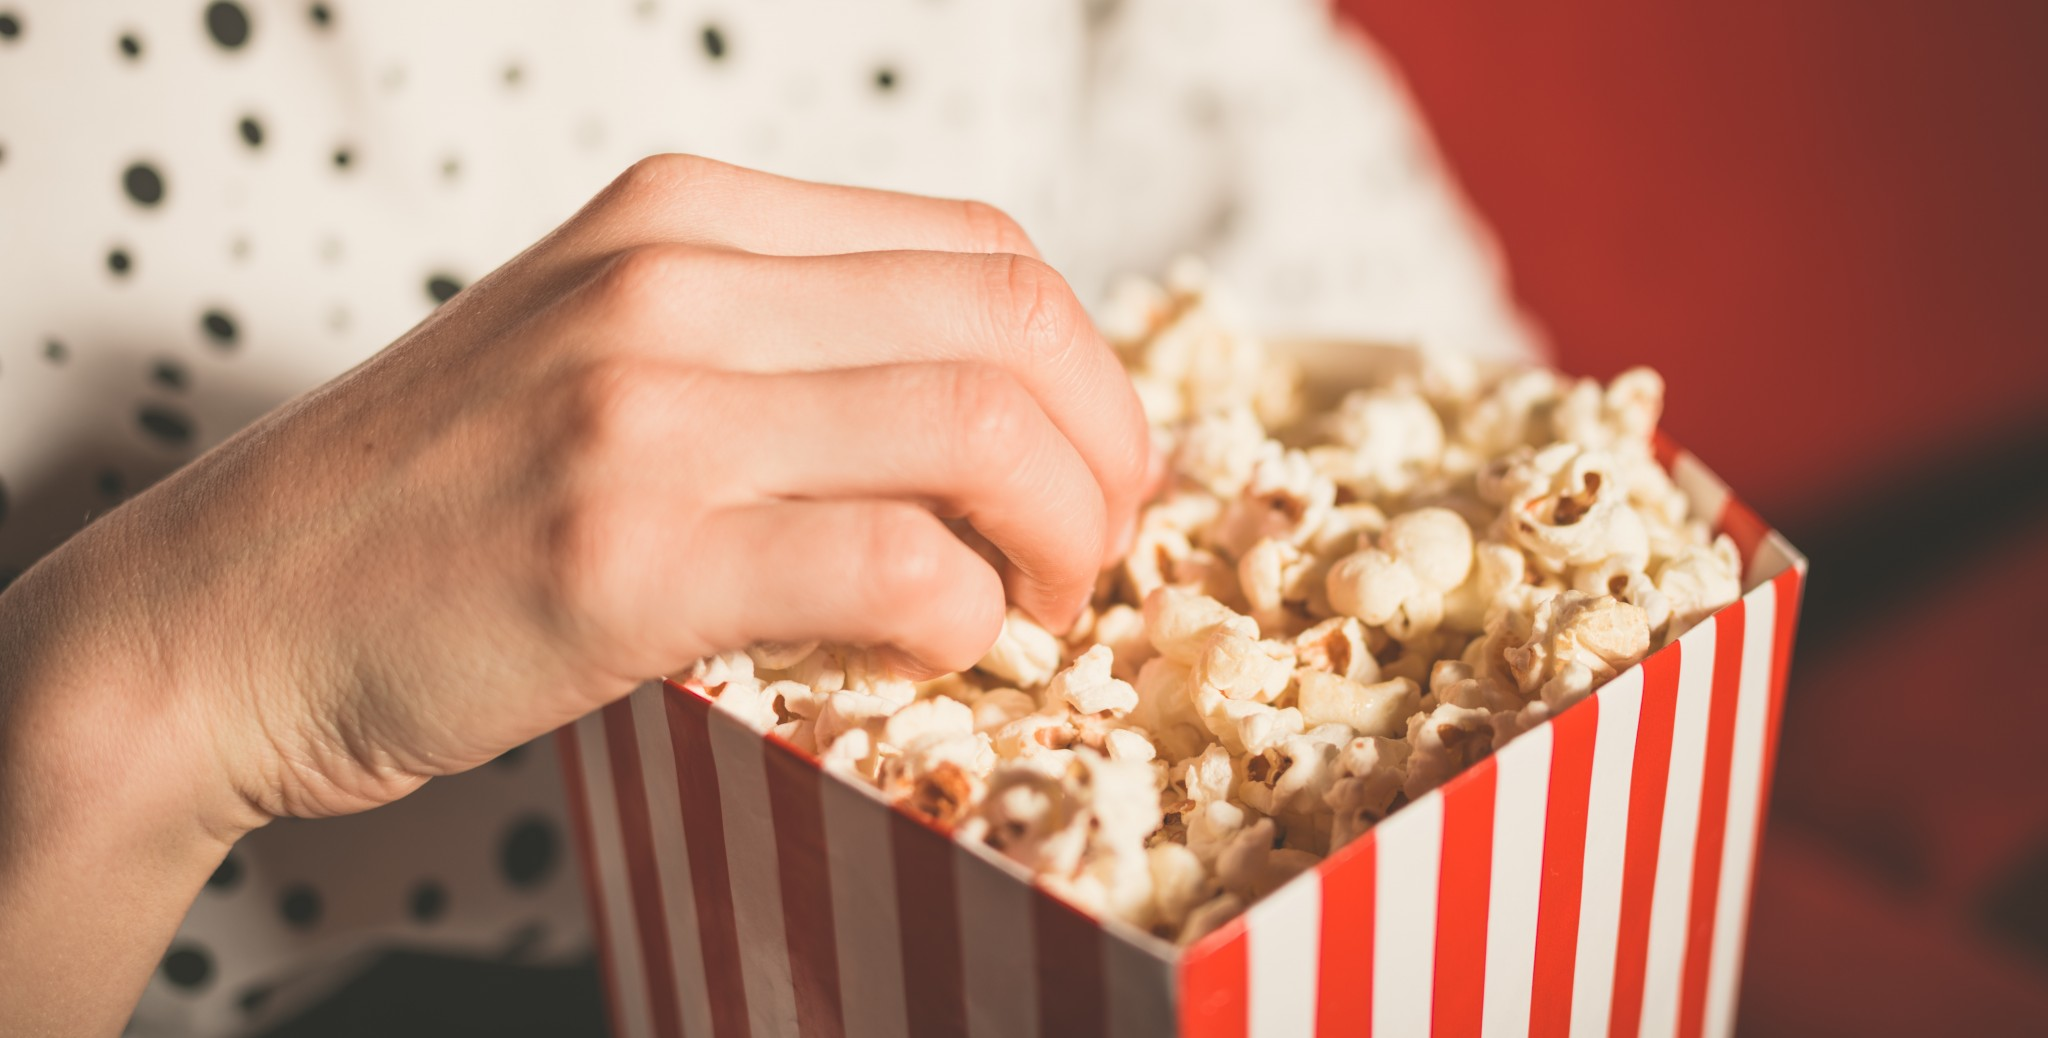 The Movie Theater Subscription Service Sinemia is Shutting Down In